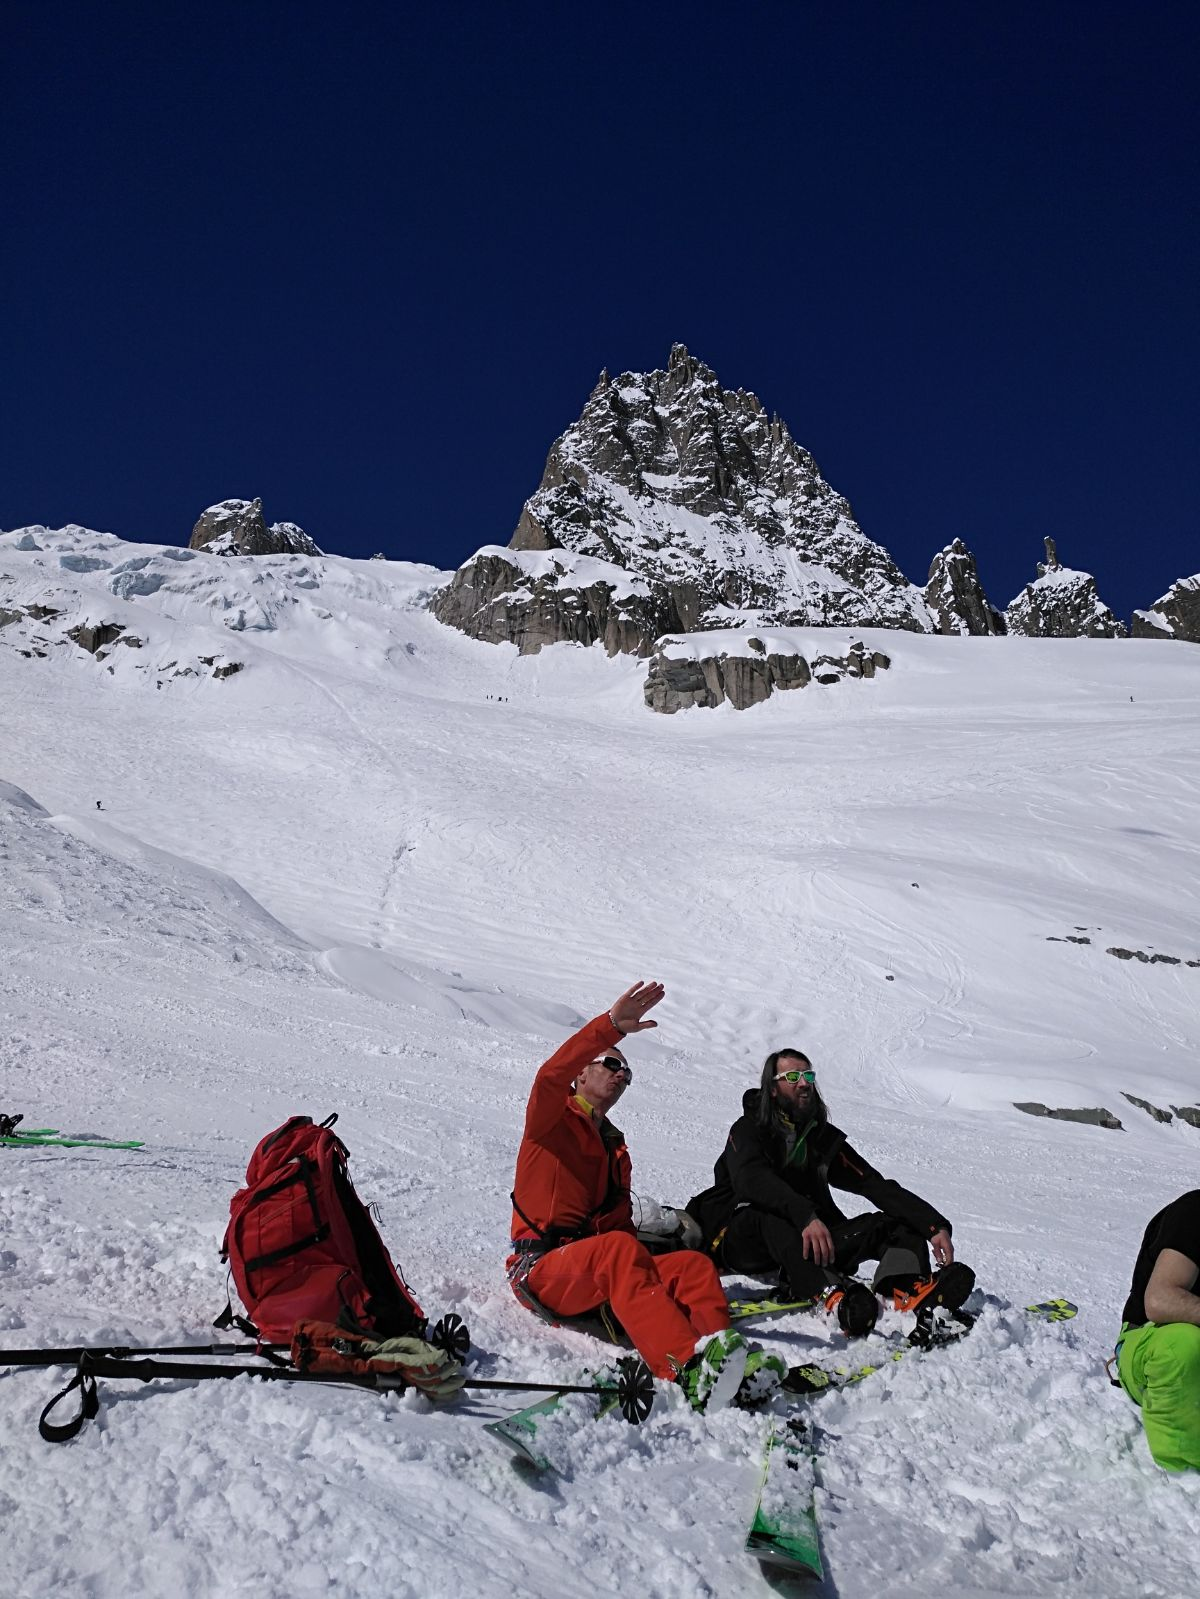 vallee blanche guide alpine proup (49)